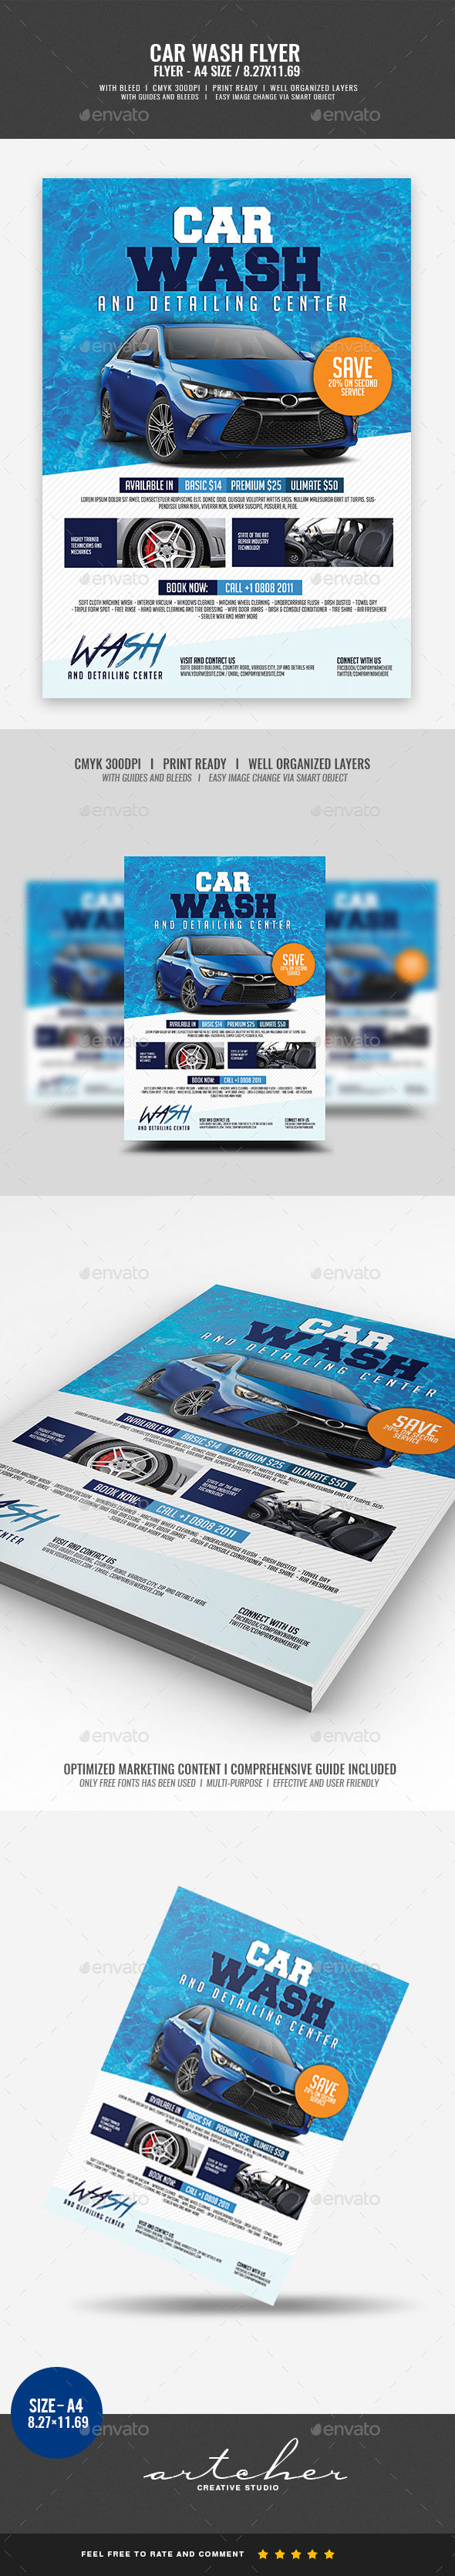 Car Wash Flyer v2 - Corporate Flyers